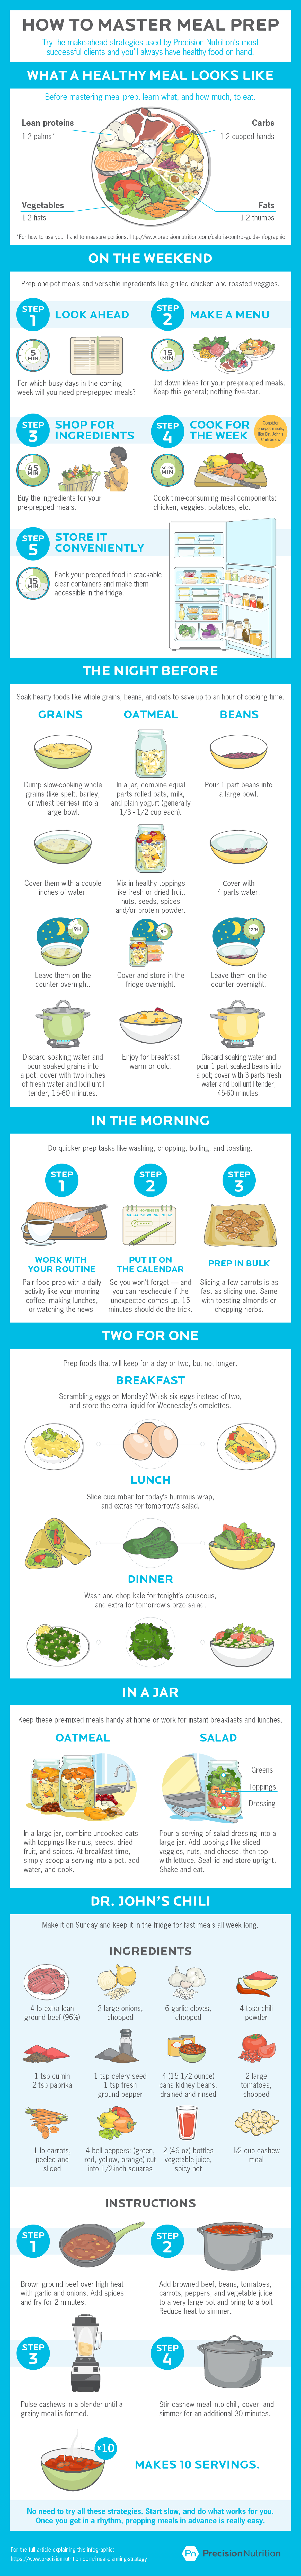 Weekly meal prep: Mastered  [Infographic] Here's how to have